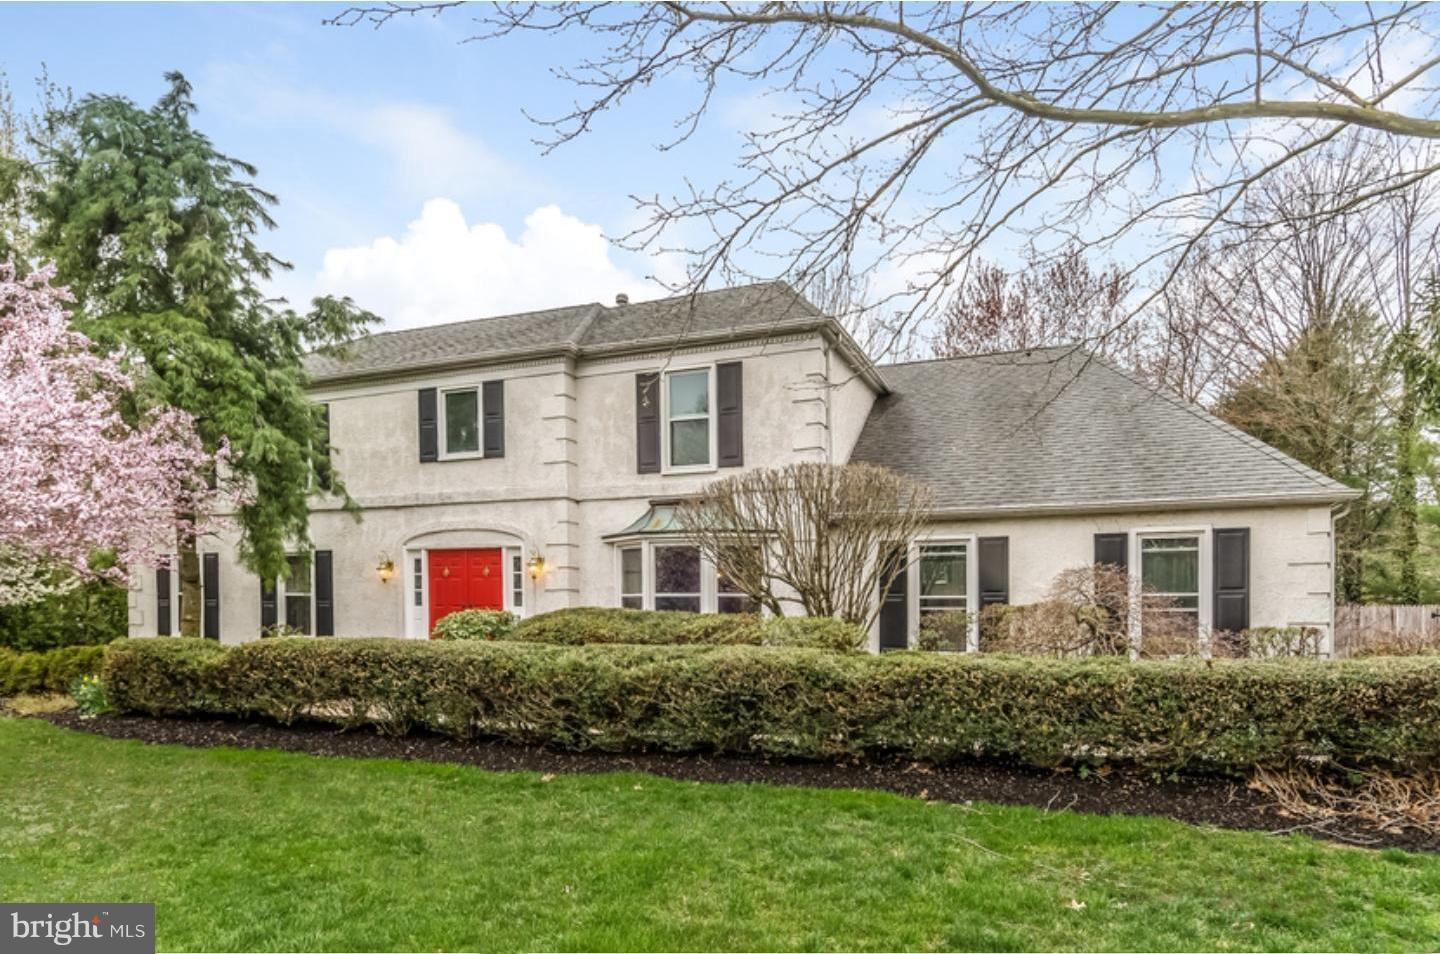 Property for Sale at 36 LAWRENCIA Drive Lawrence Township, New Jersey 08648 United States